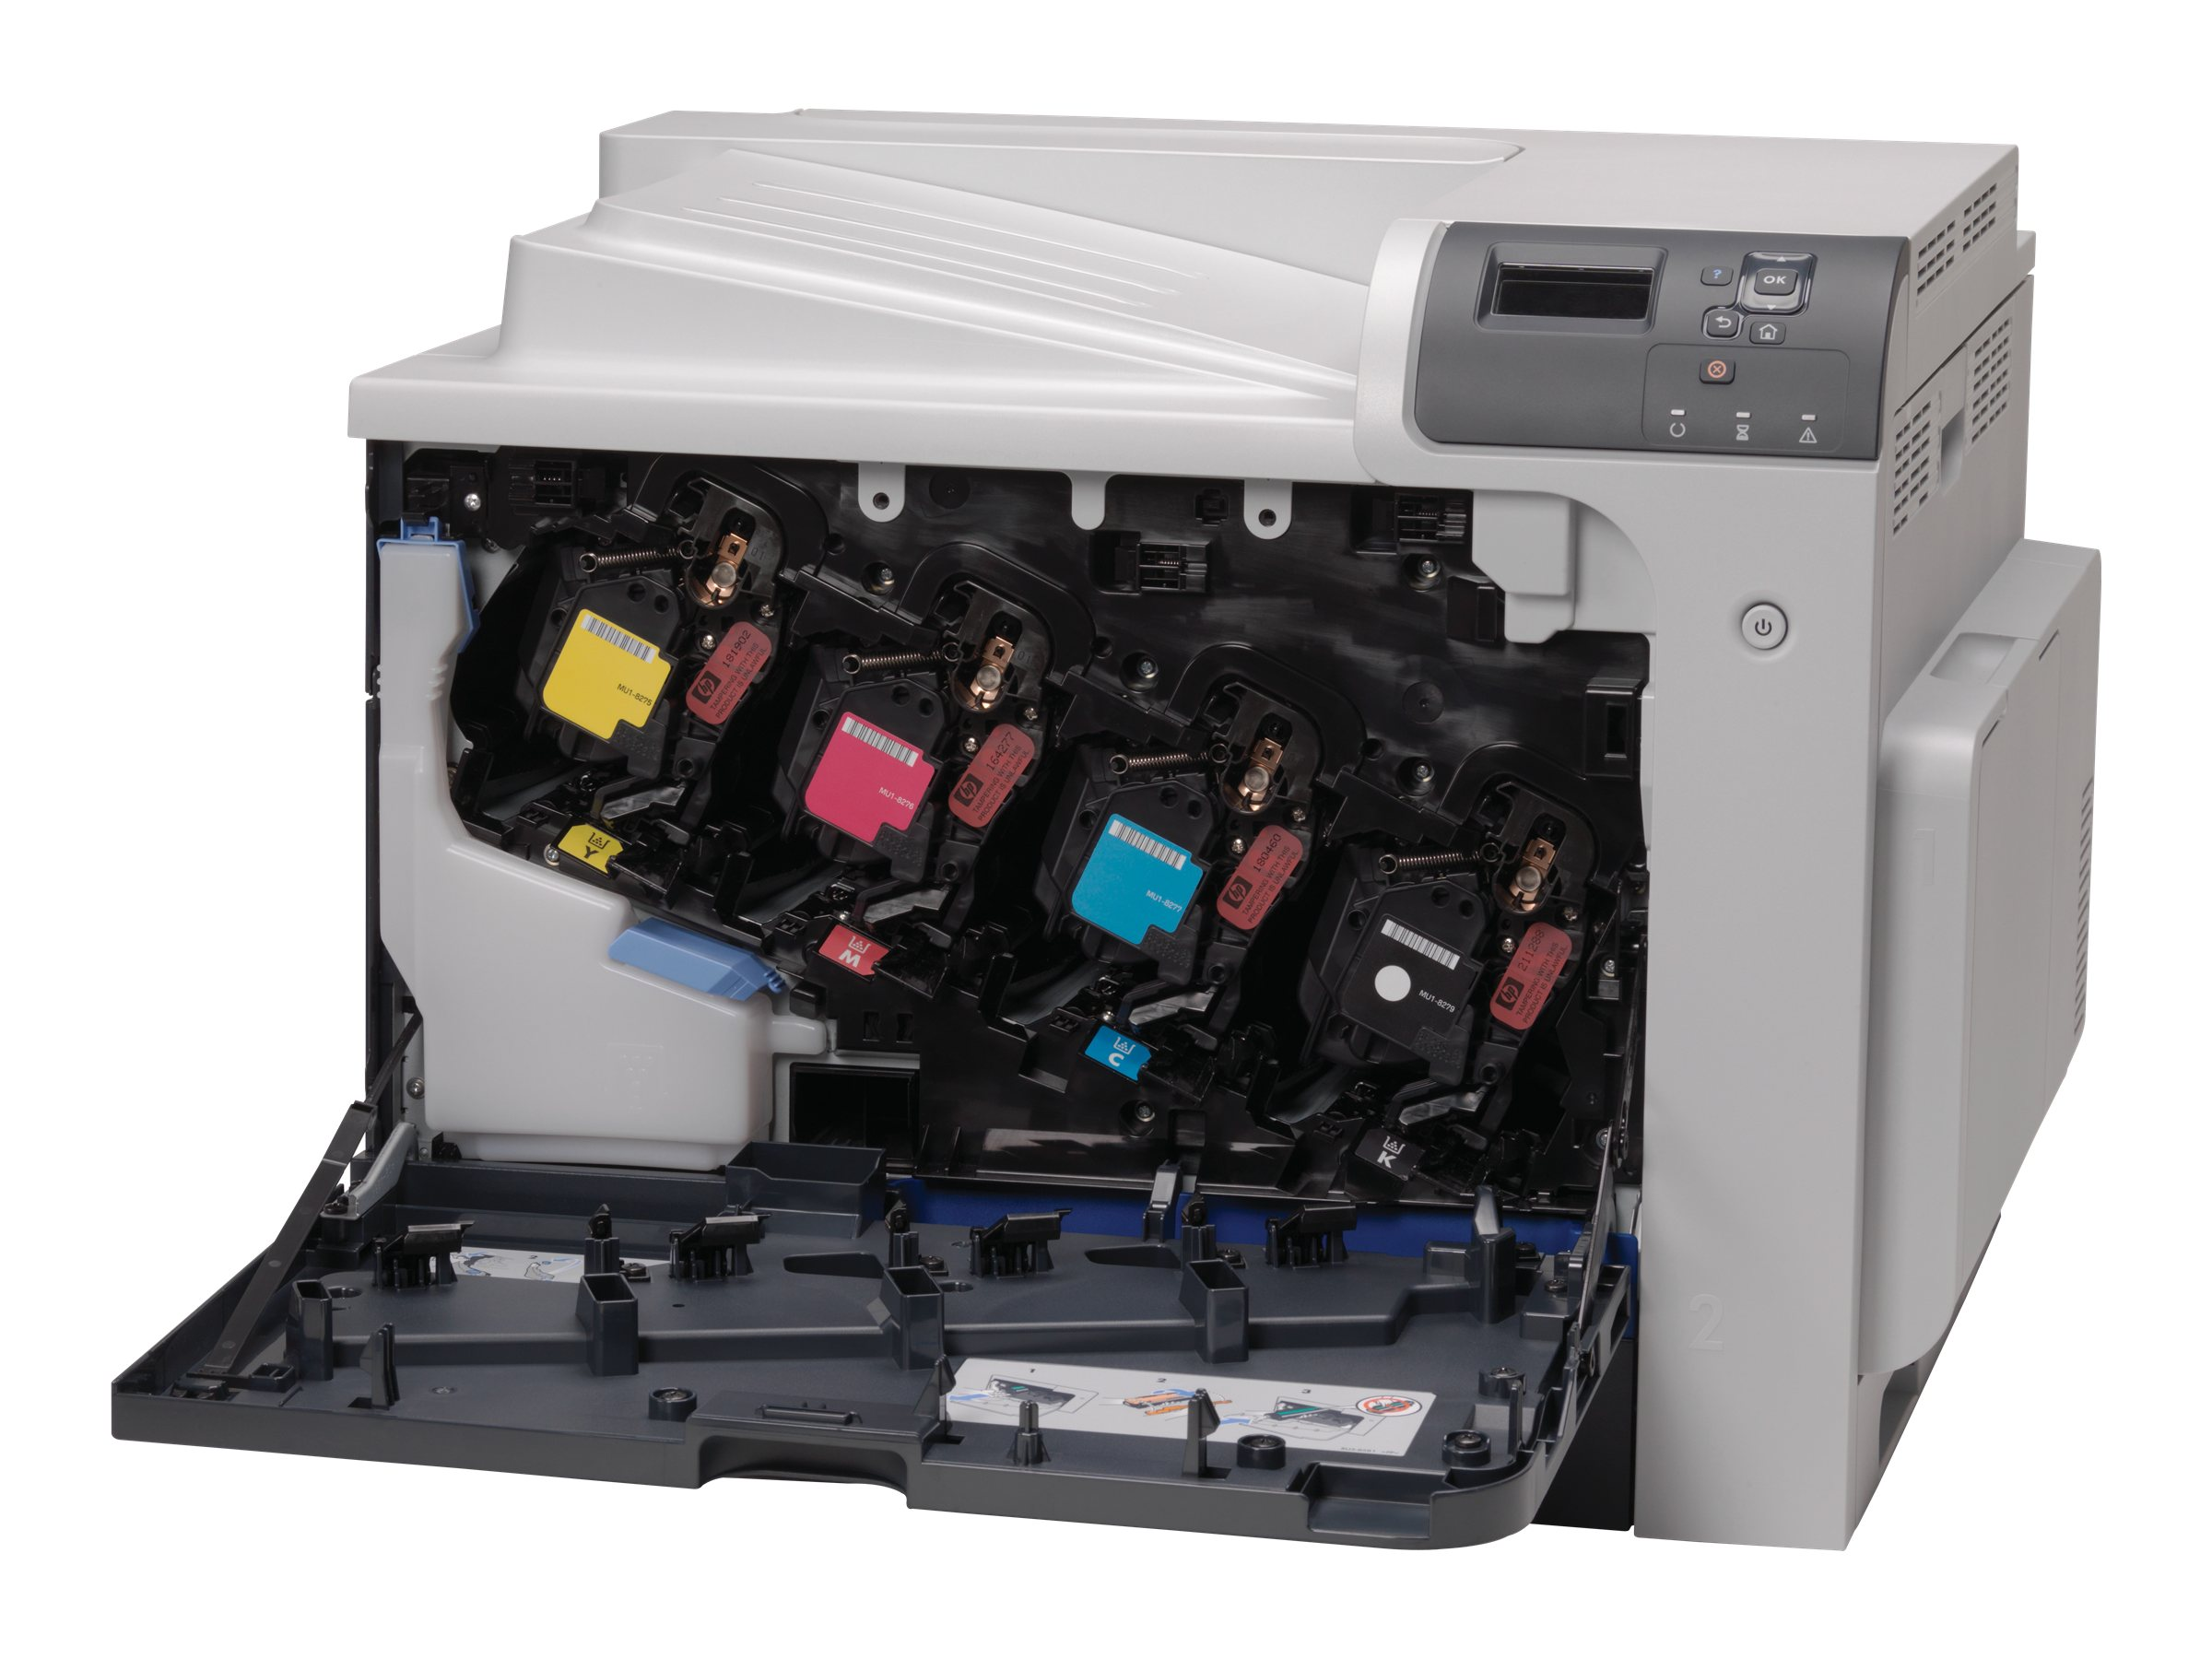 HP Color LaserJet CP4025n Printer, CC489A#BGJ